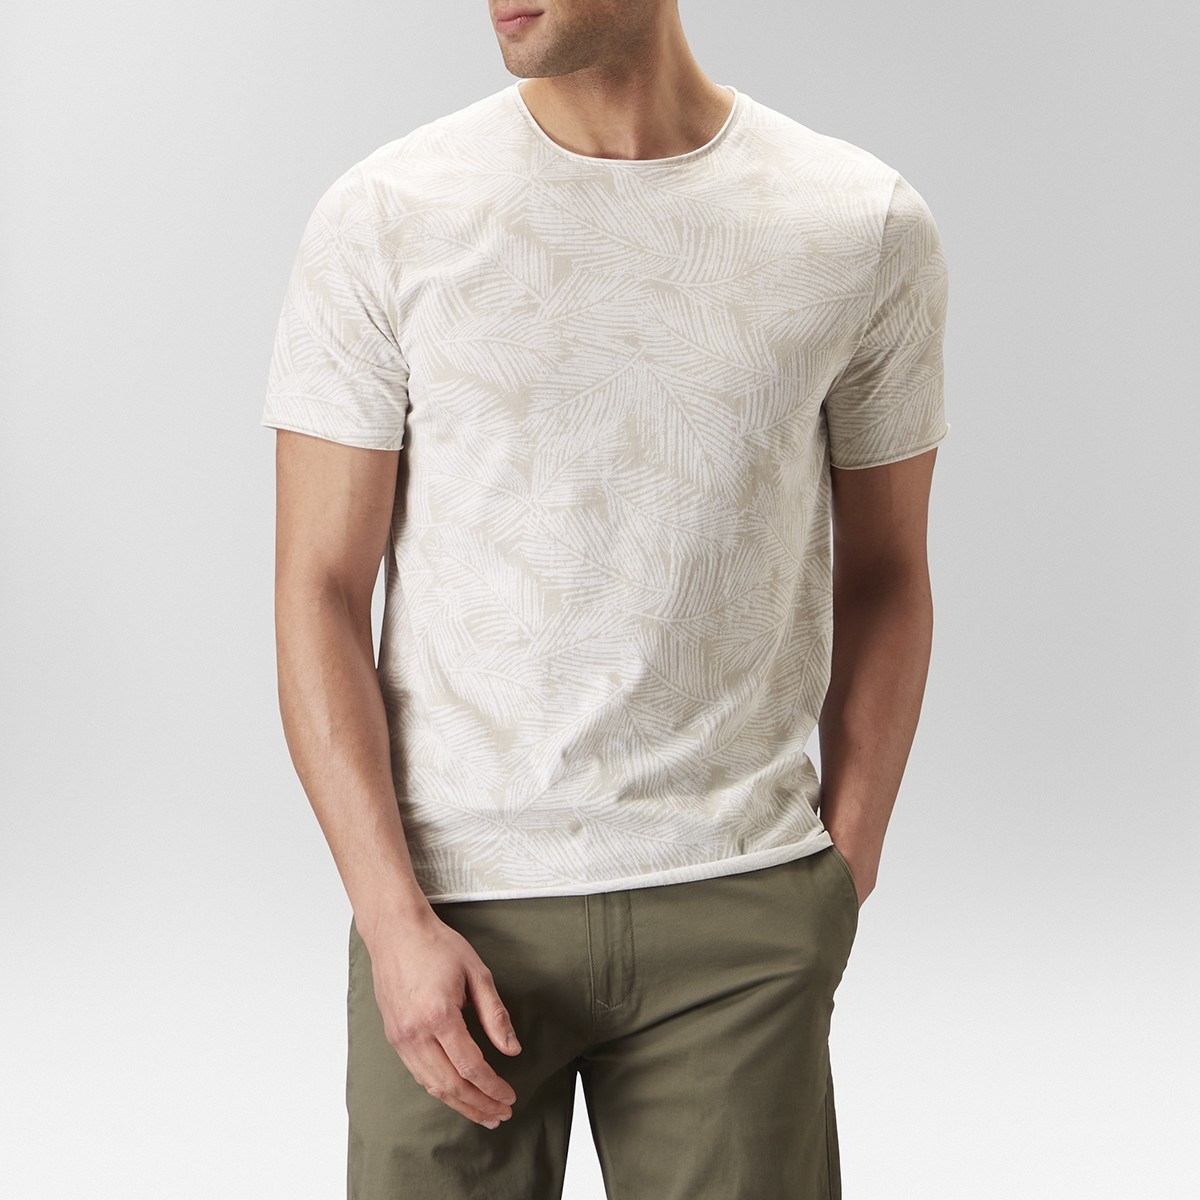 Pete Mönstrad T-shirt Beige | East West | Brothers.se